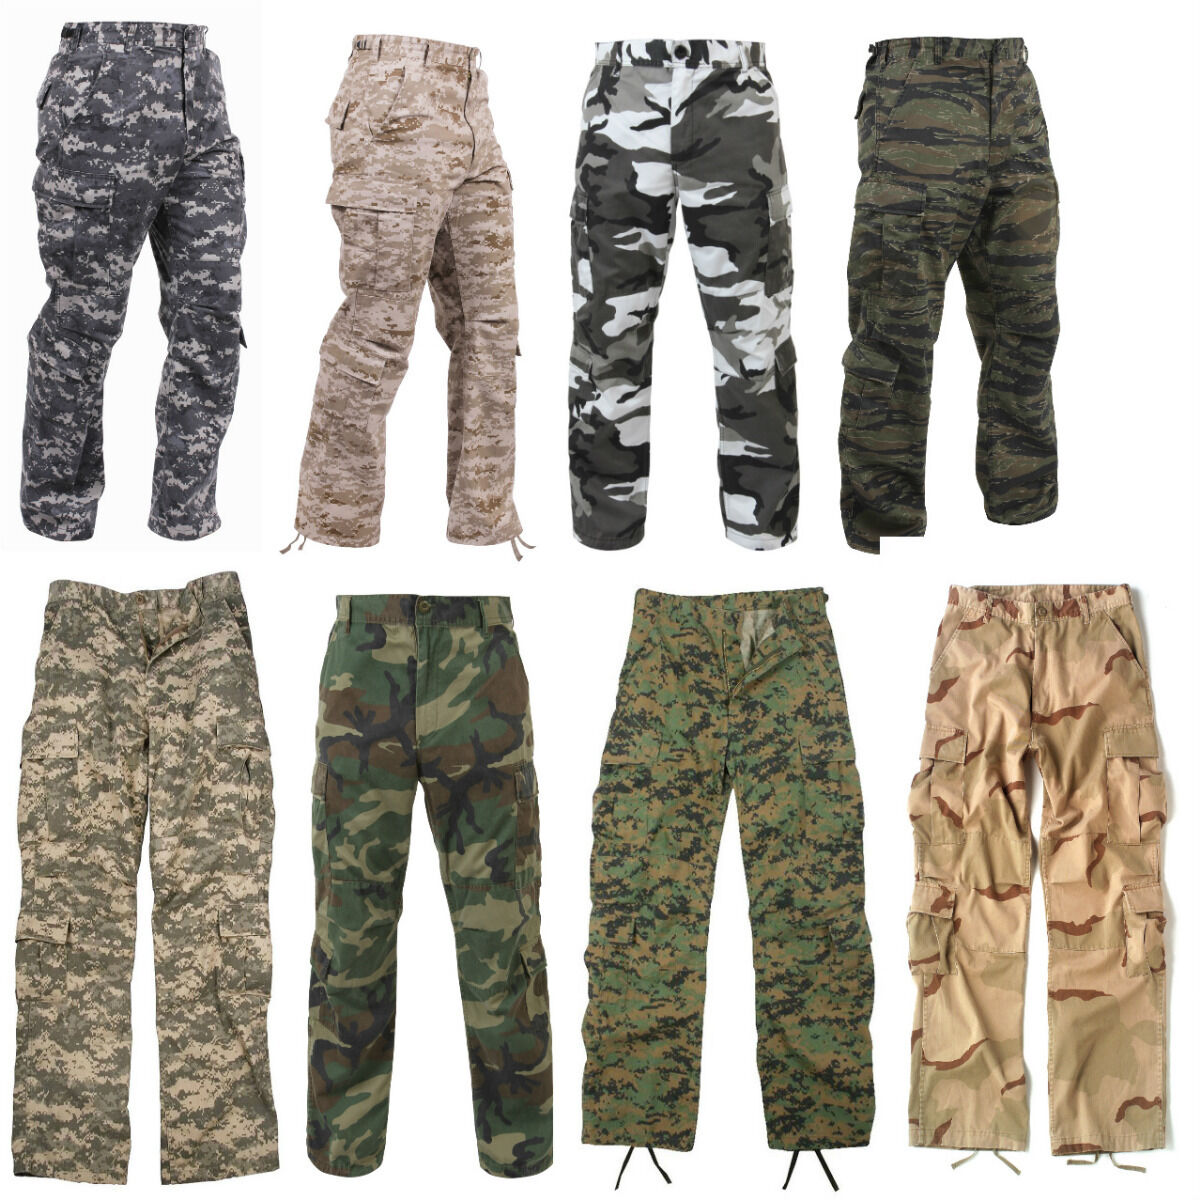 Pants BDU Pants Military Camouflage Paratrooper Tactical Fatigue Camo  redhco